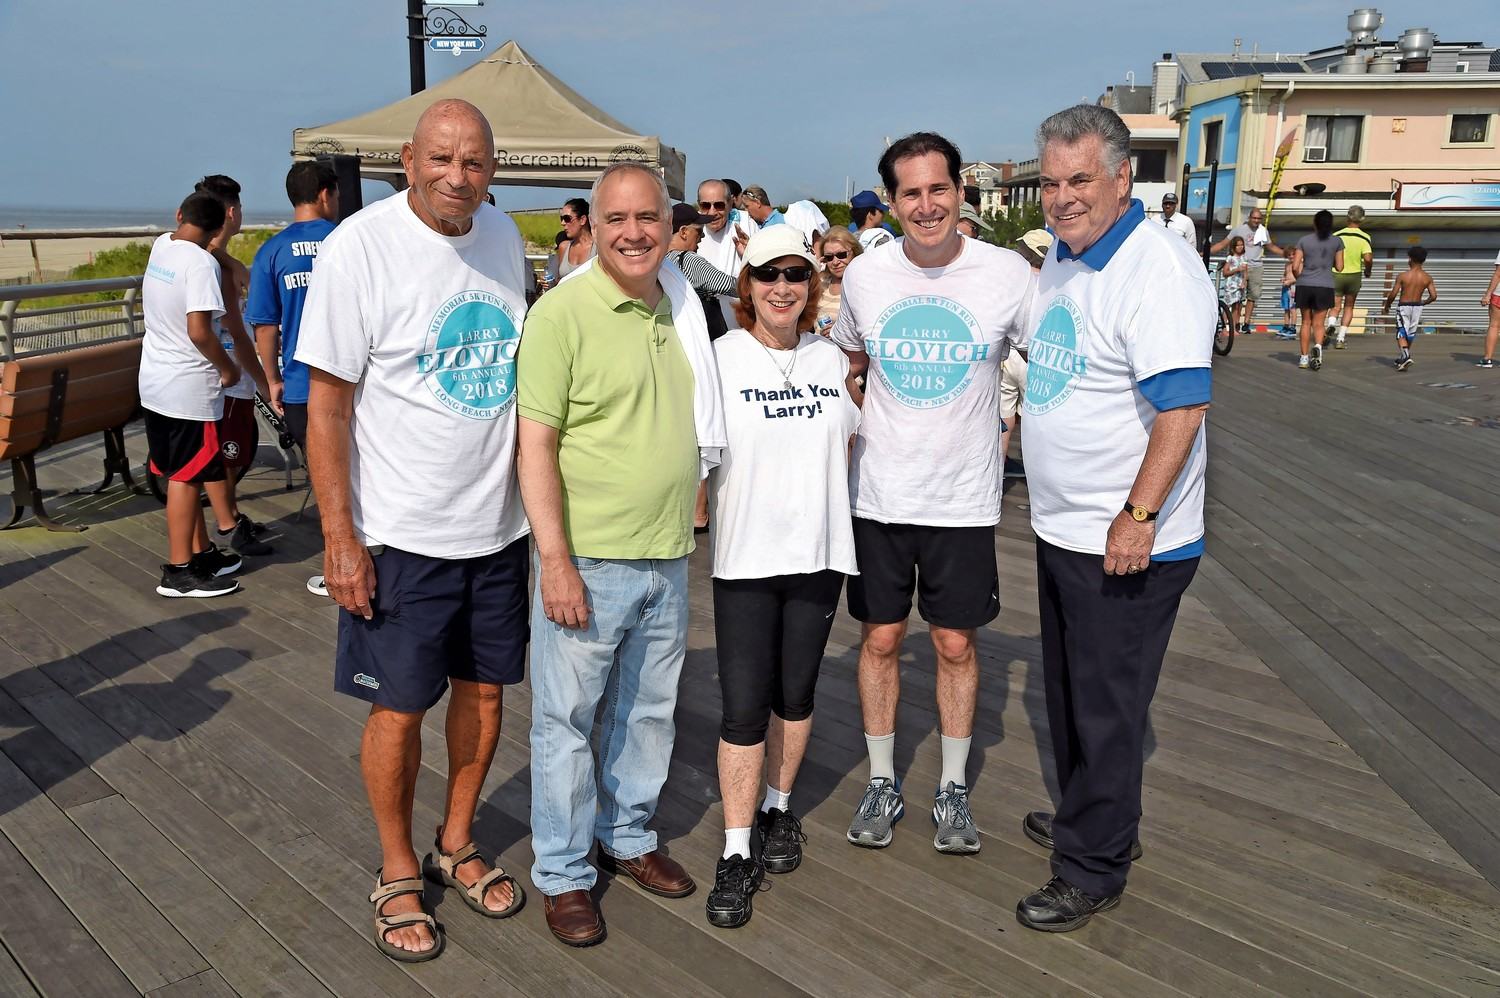 Former State Assemblyman Harvey Weisenberg, State Comptroller Tom DiNapoli, Helen Elovich, State Sen. Todd Kaminsky, and U.S. Rep. Peter King at the race.